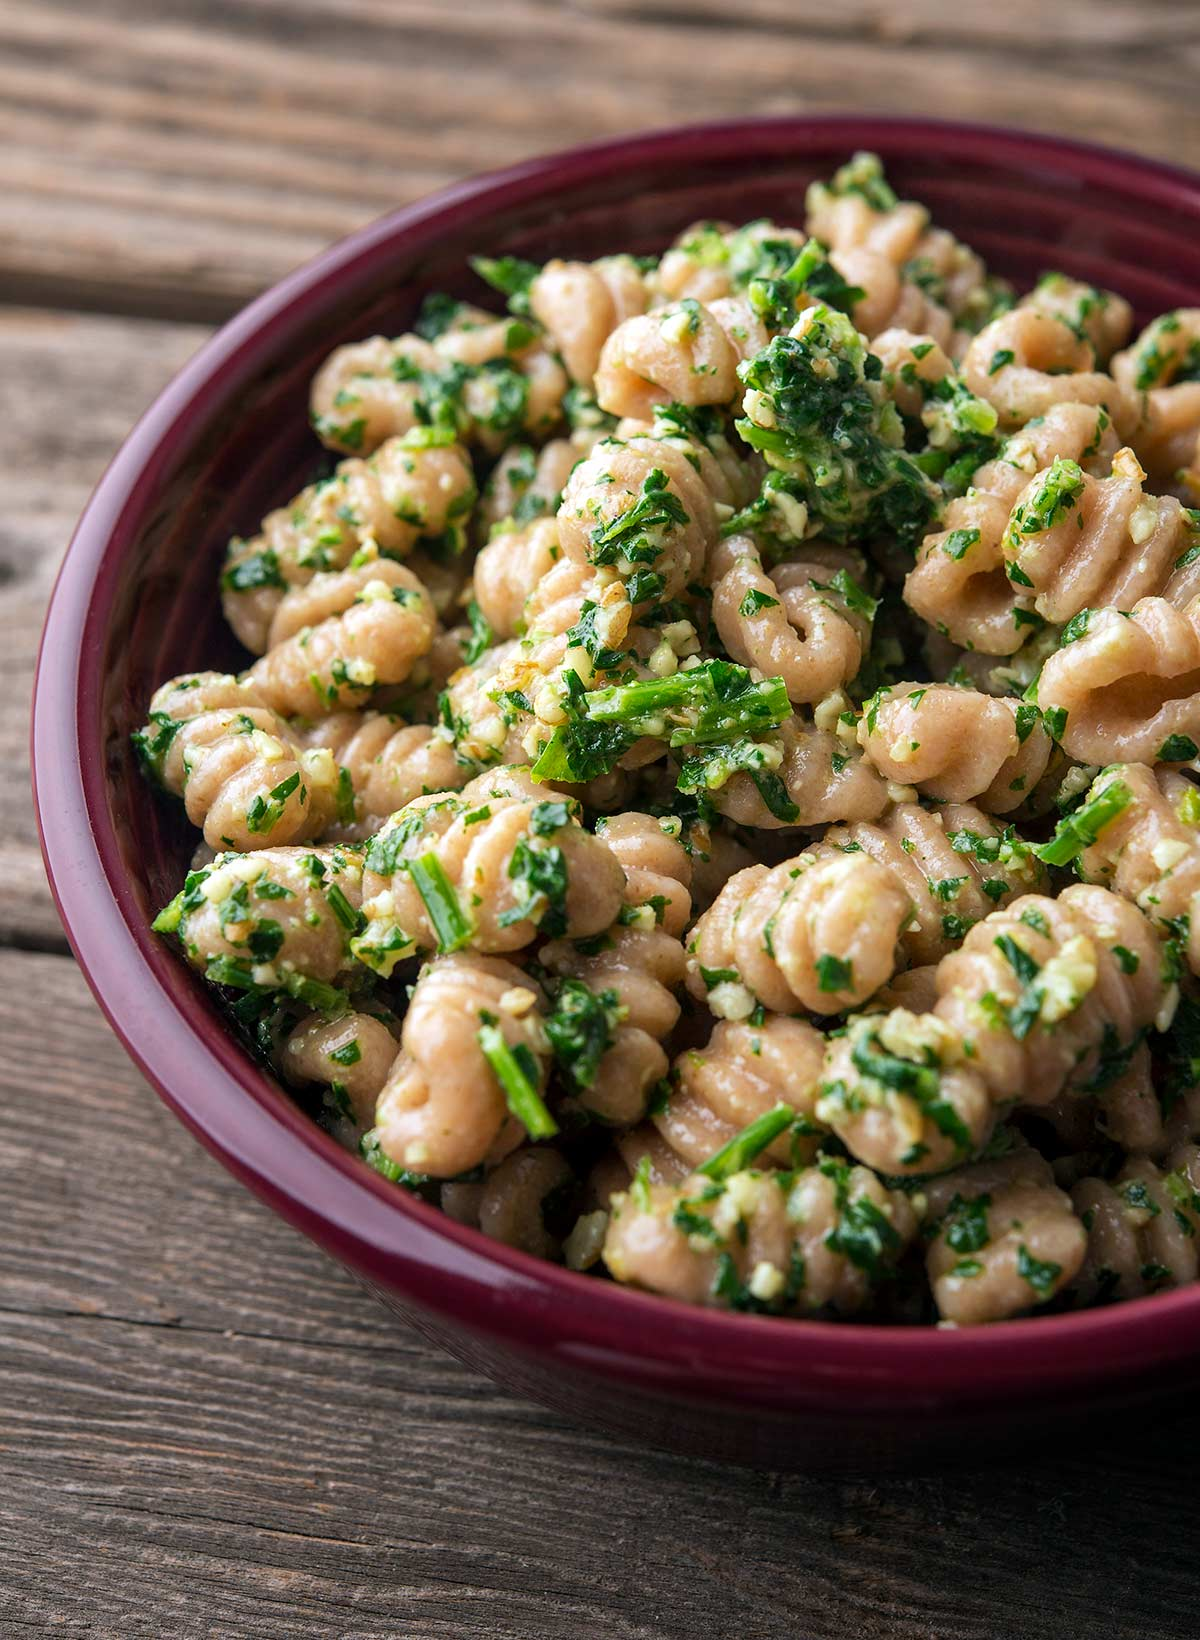 Parsley pesto mixed with pasta in a bowl